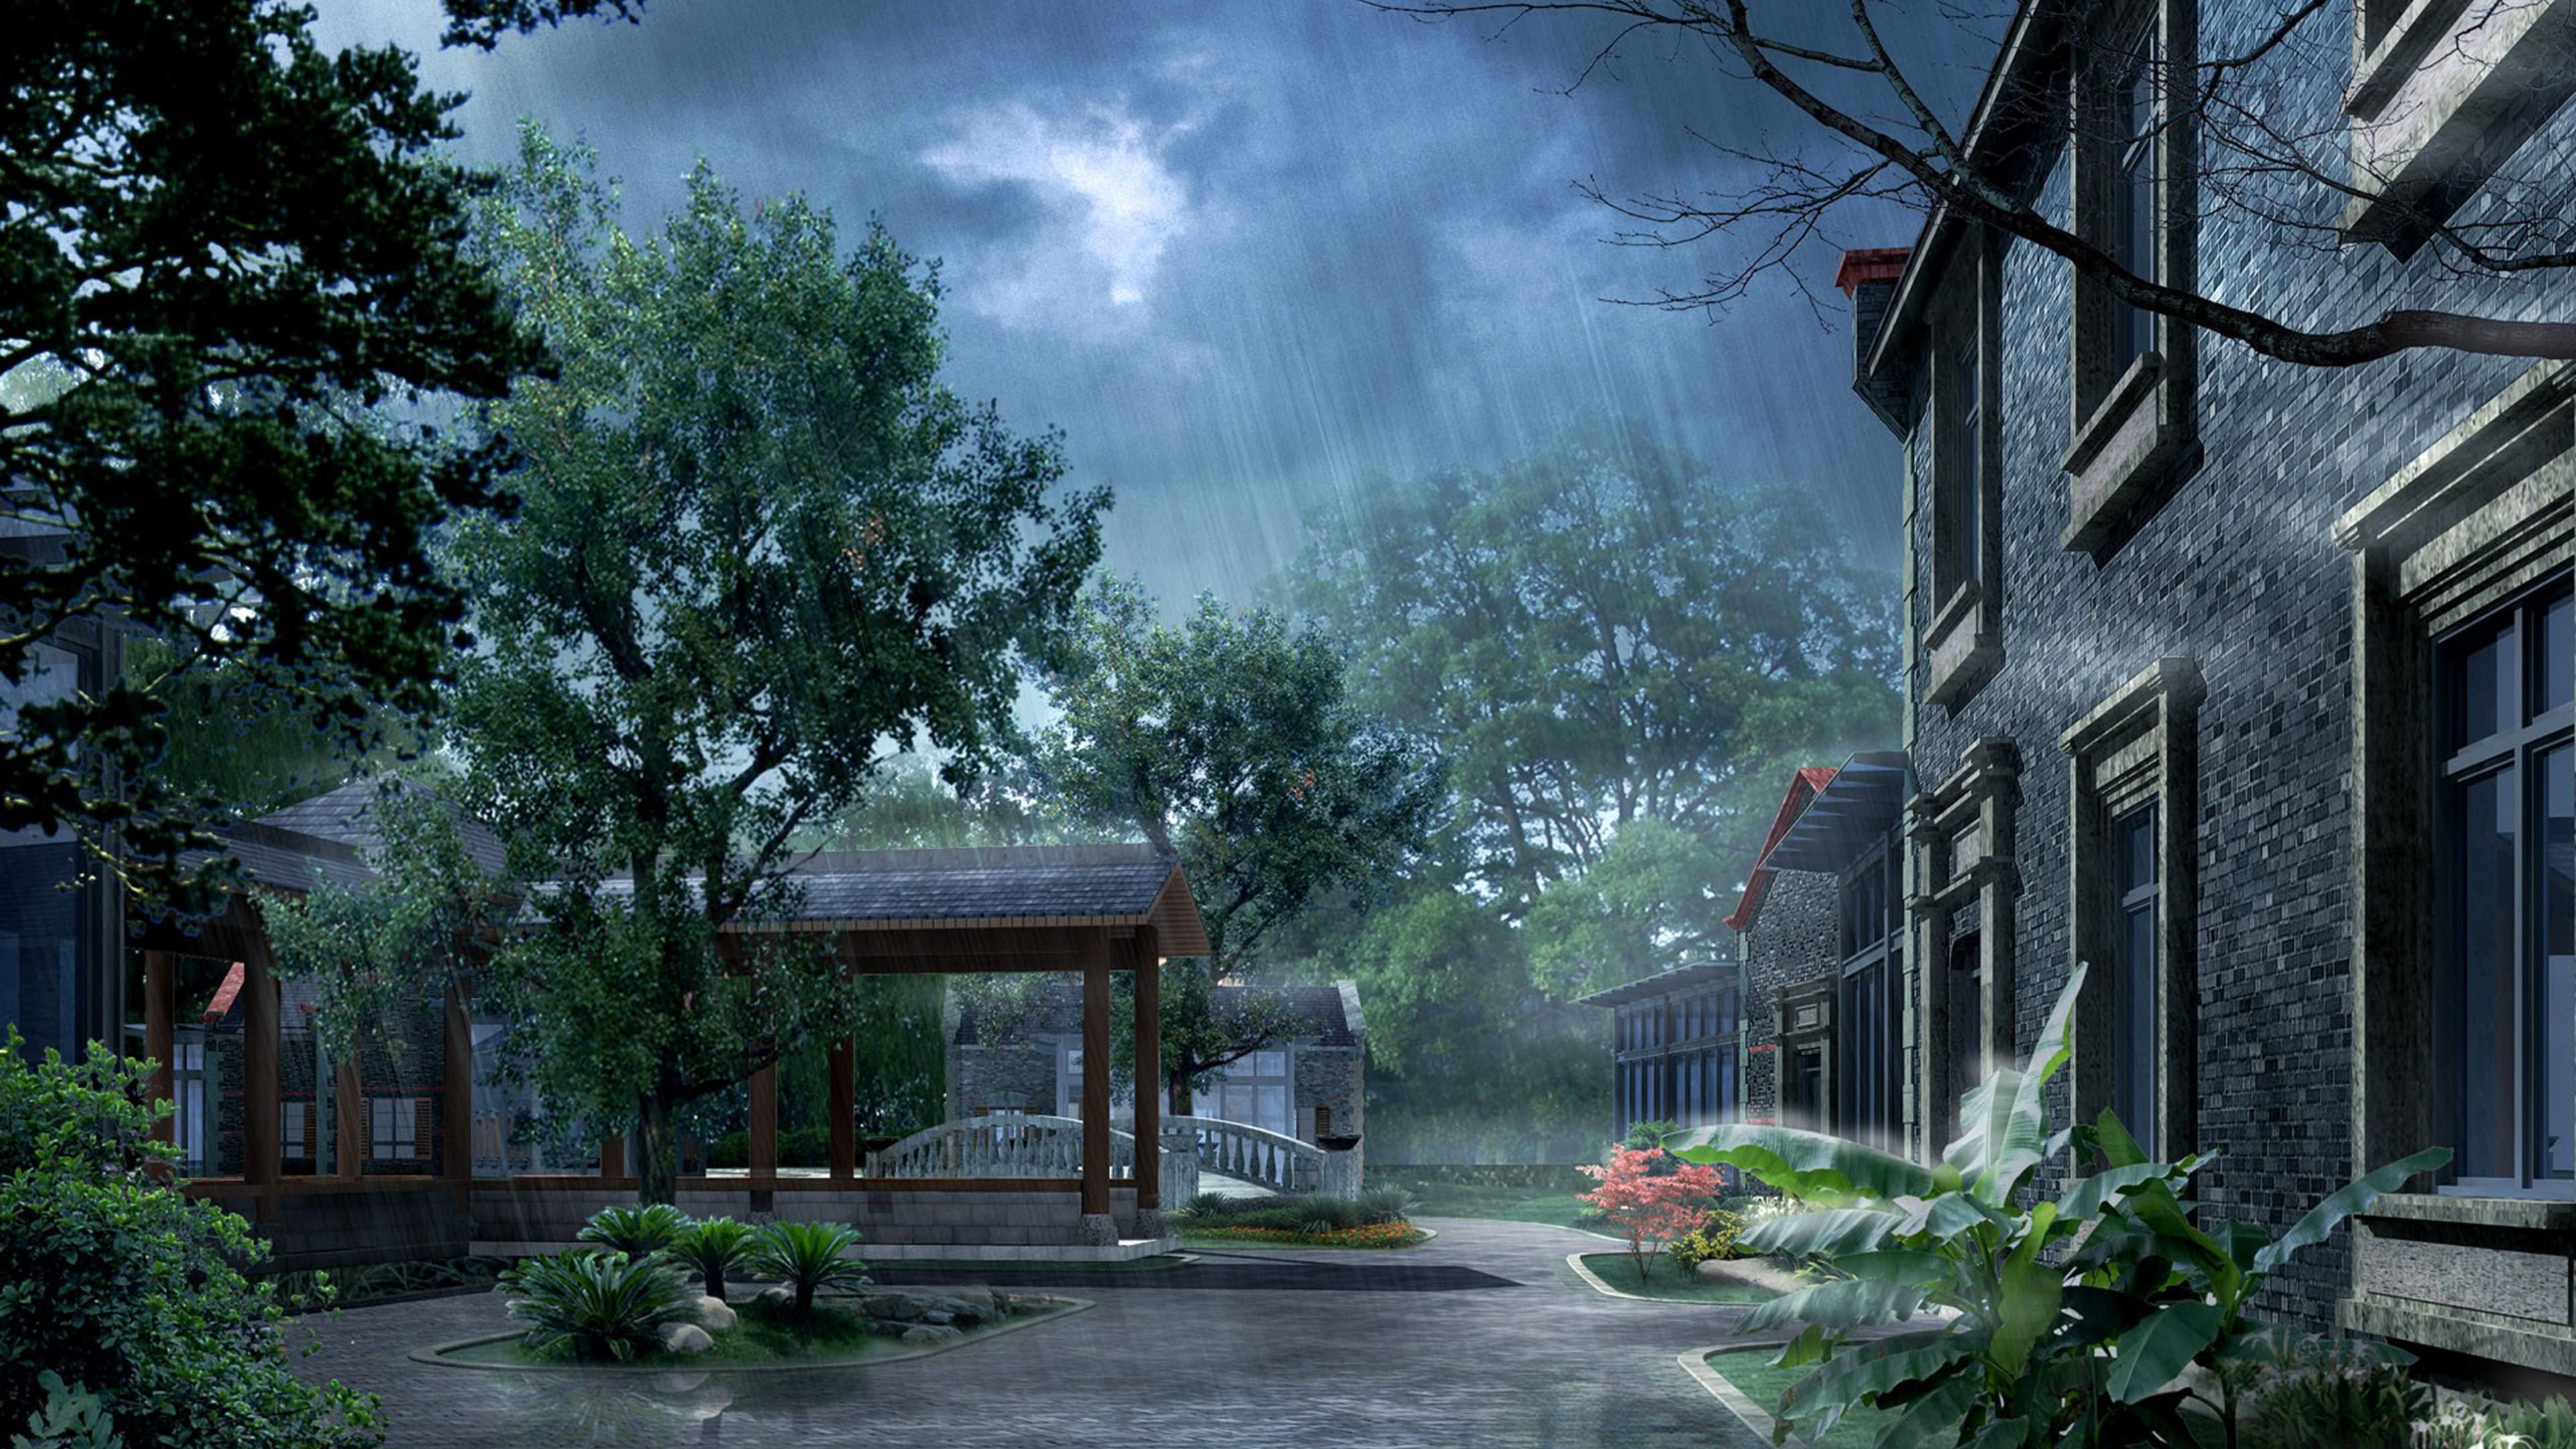 Rainy day in Japan 3d wallpaper download 3d desktop